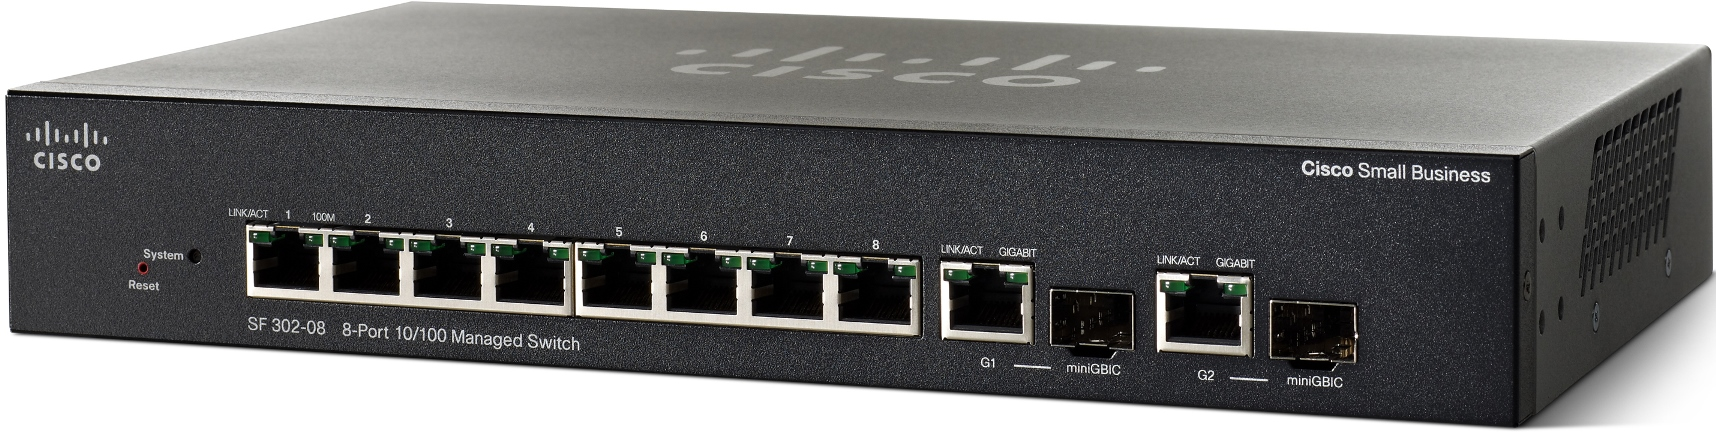 Cisco SRW208G-K9 SF302-08 8-port 10/100 Managed Switch, zam: SF352-08-K9-UK